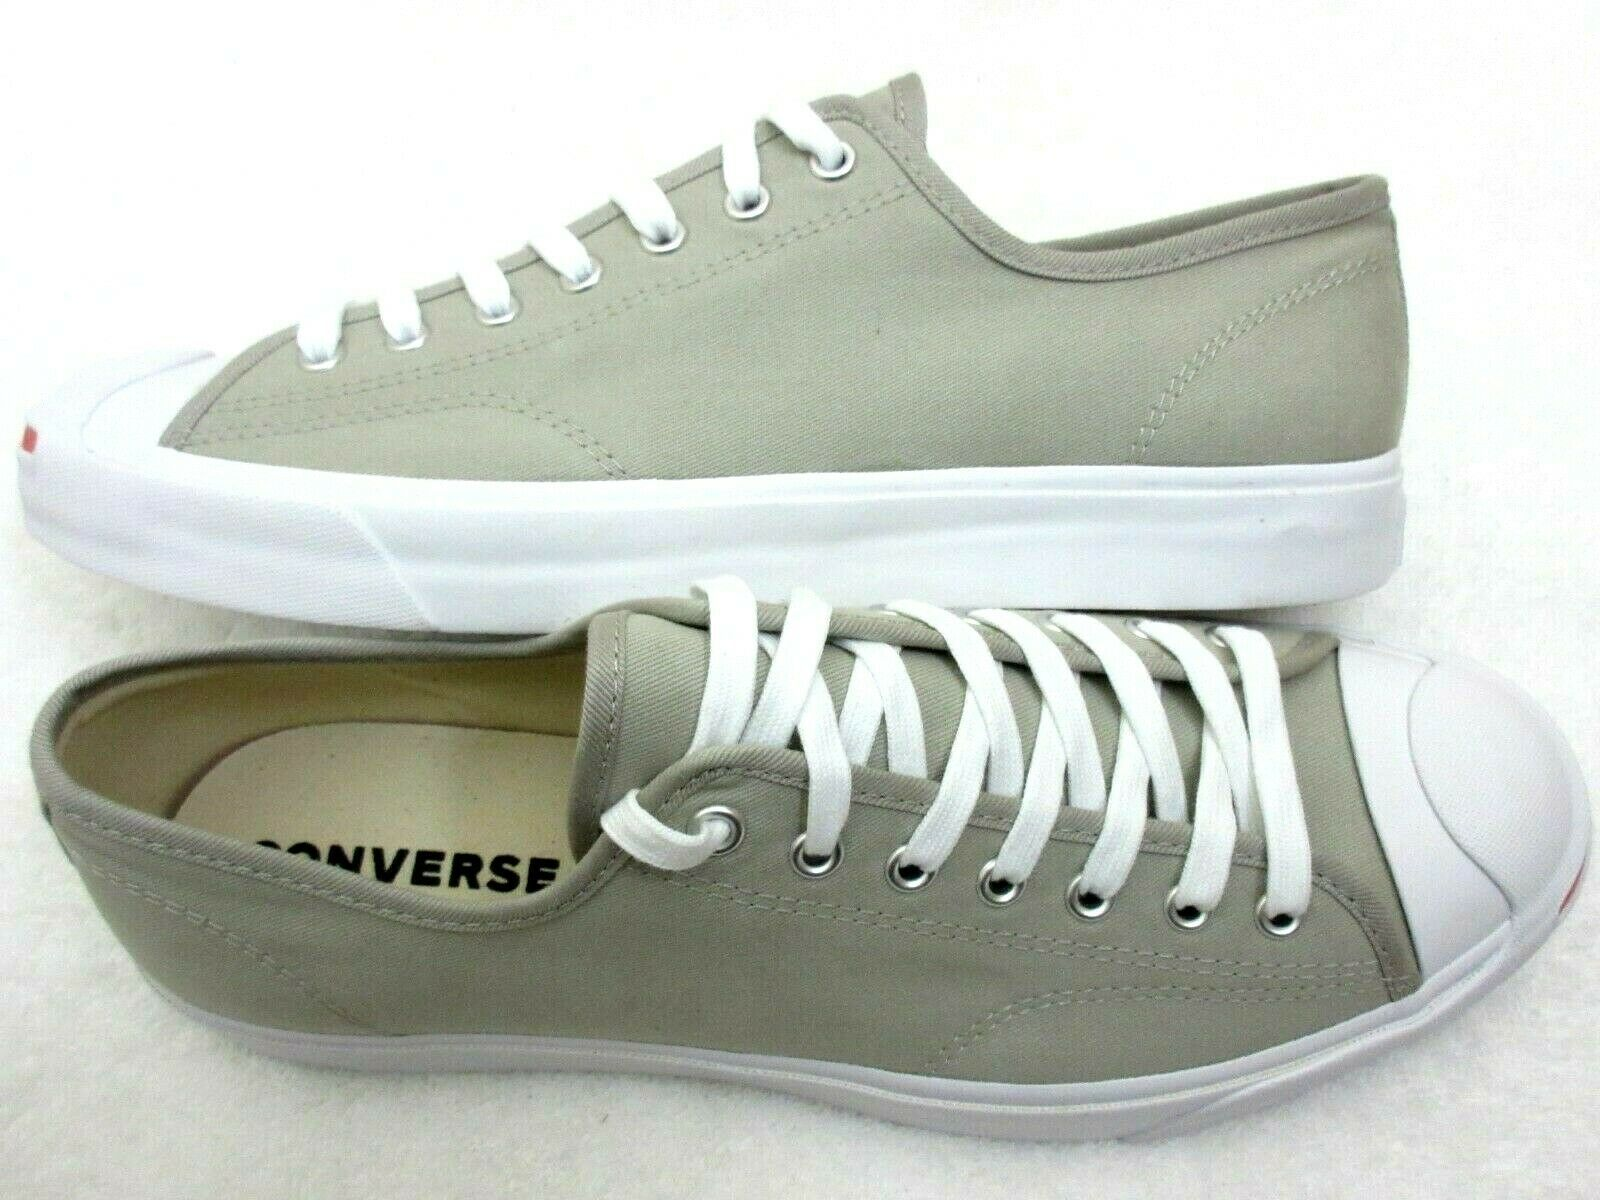 Converse Mens Jack Purcell OX Canvas Birch Bark White Habanero Red Shoes Sz 9.5 image 4